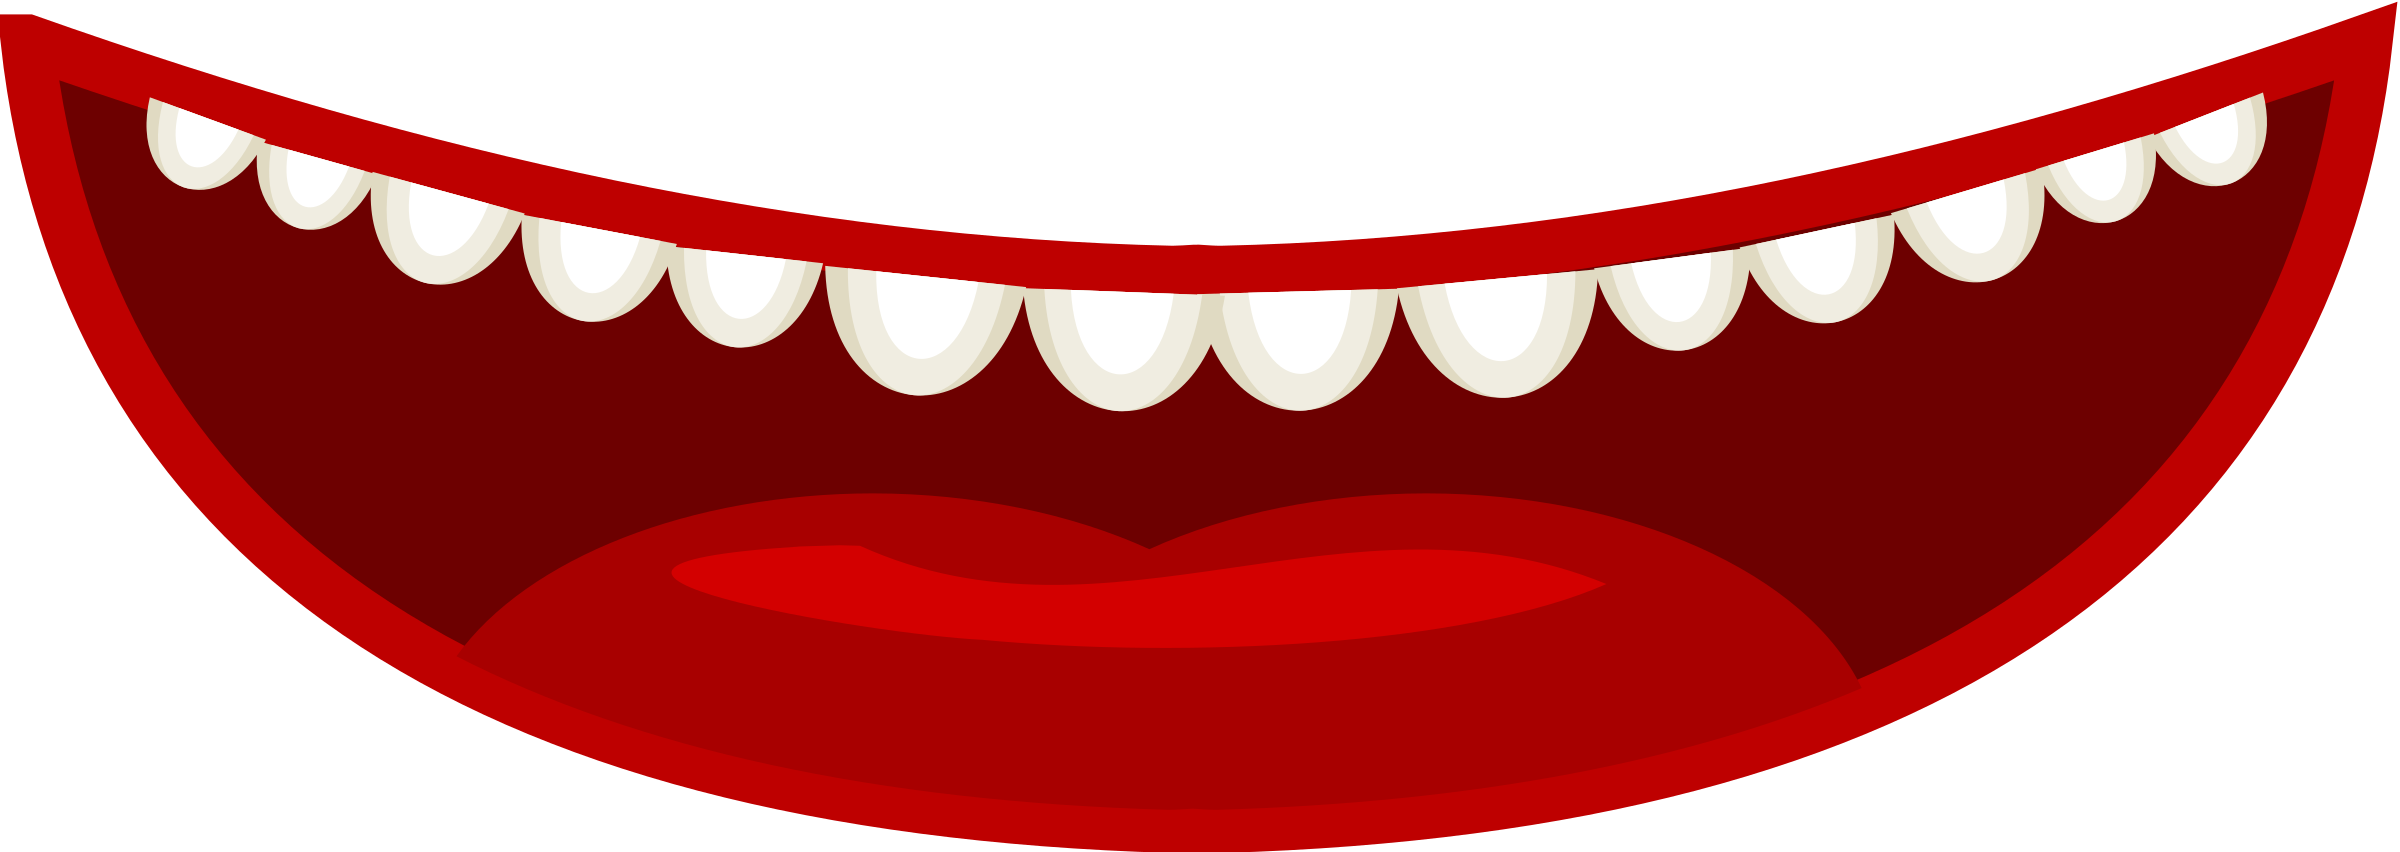 Mouth in a cartoon style by Magnesus